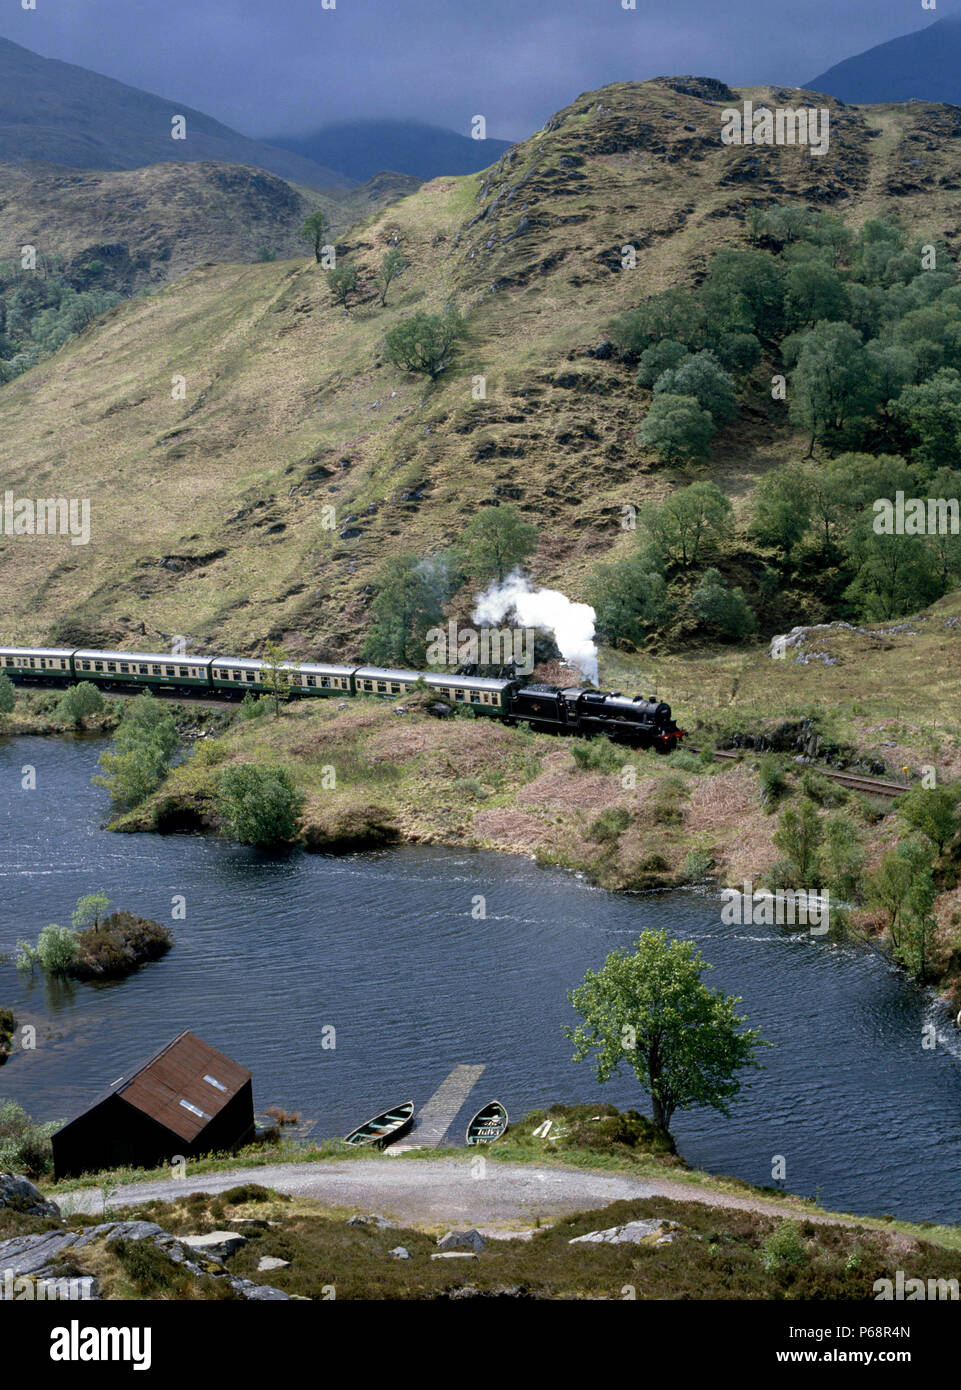 West Highlander. No.44767 George Stephenson skirts Loch Eilt en route from Fort William to Mallaig. 26.05.1985. - Stock Image